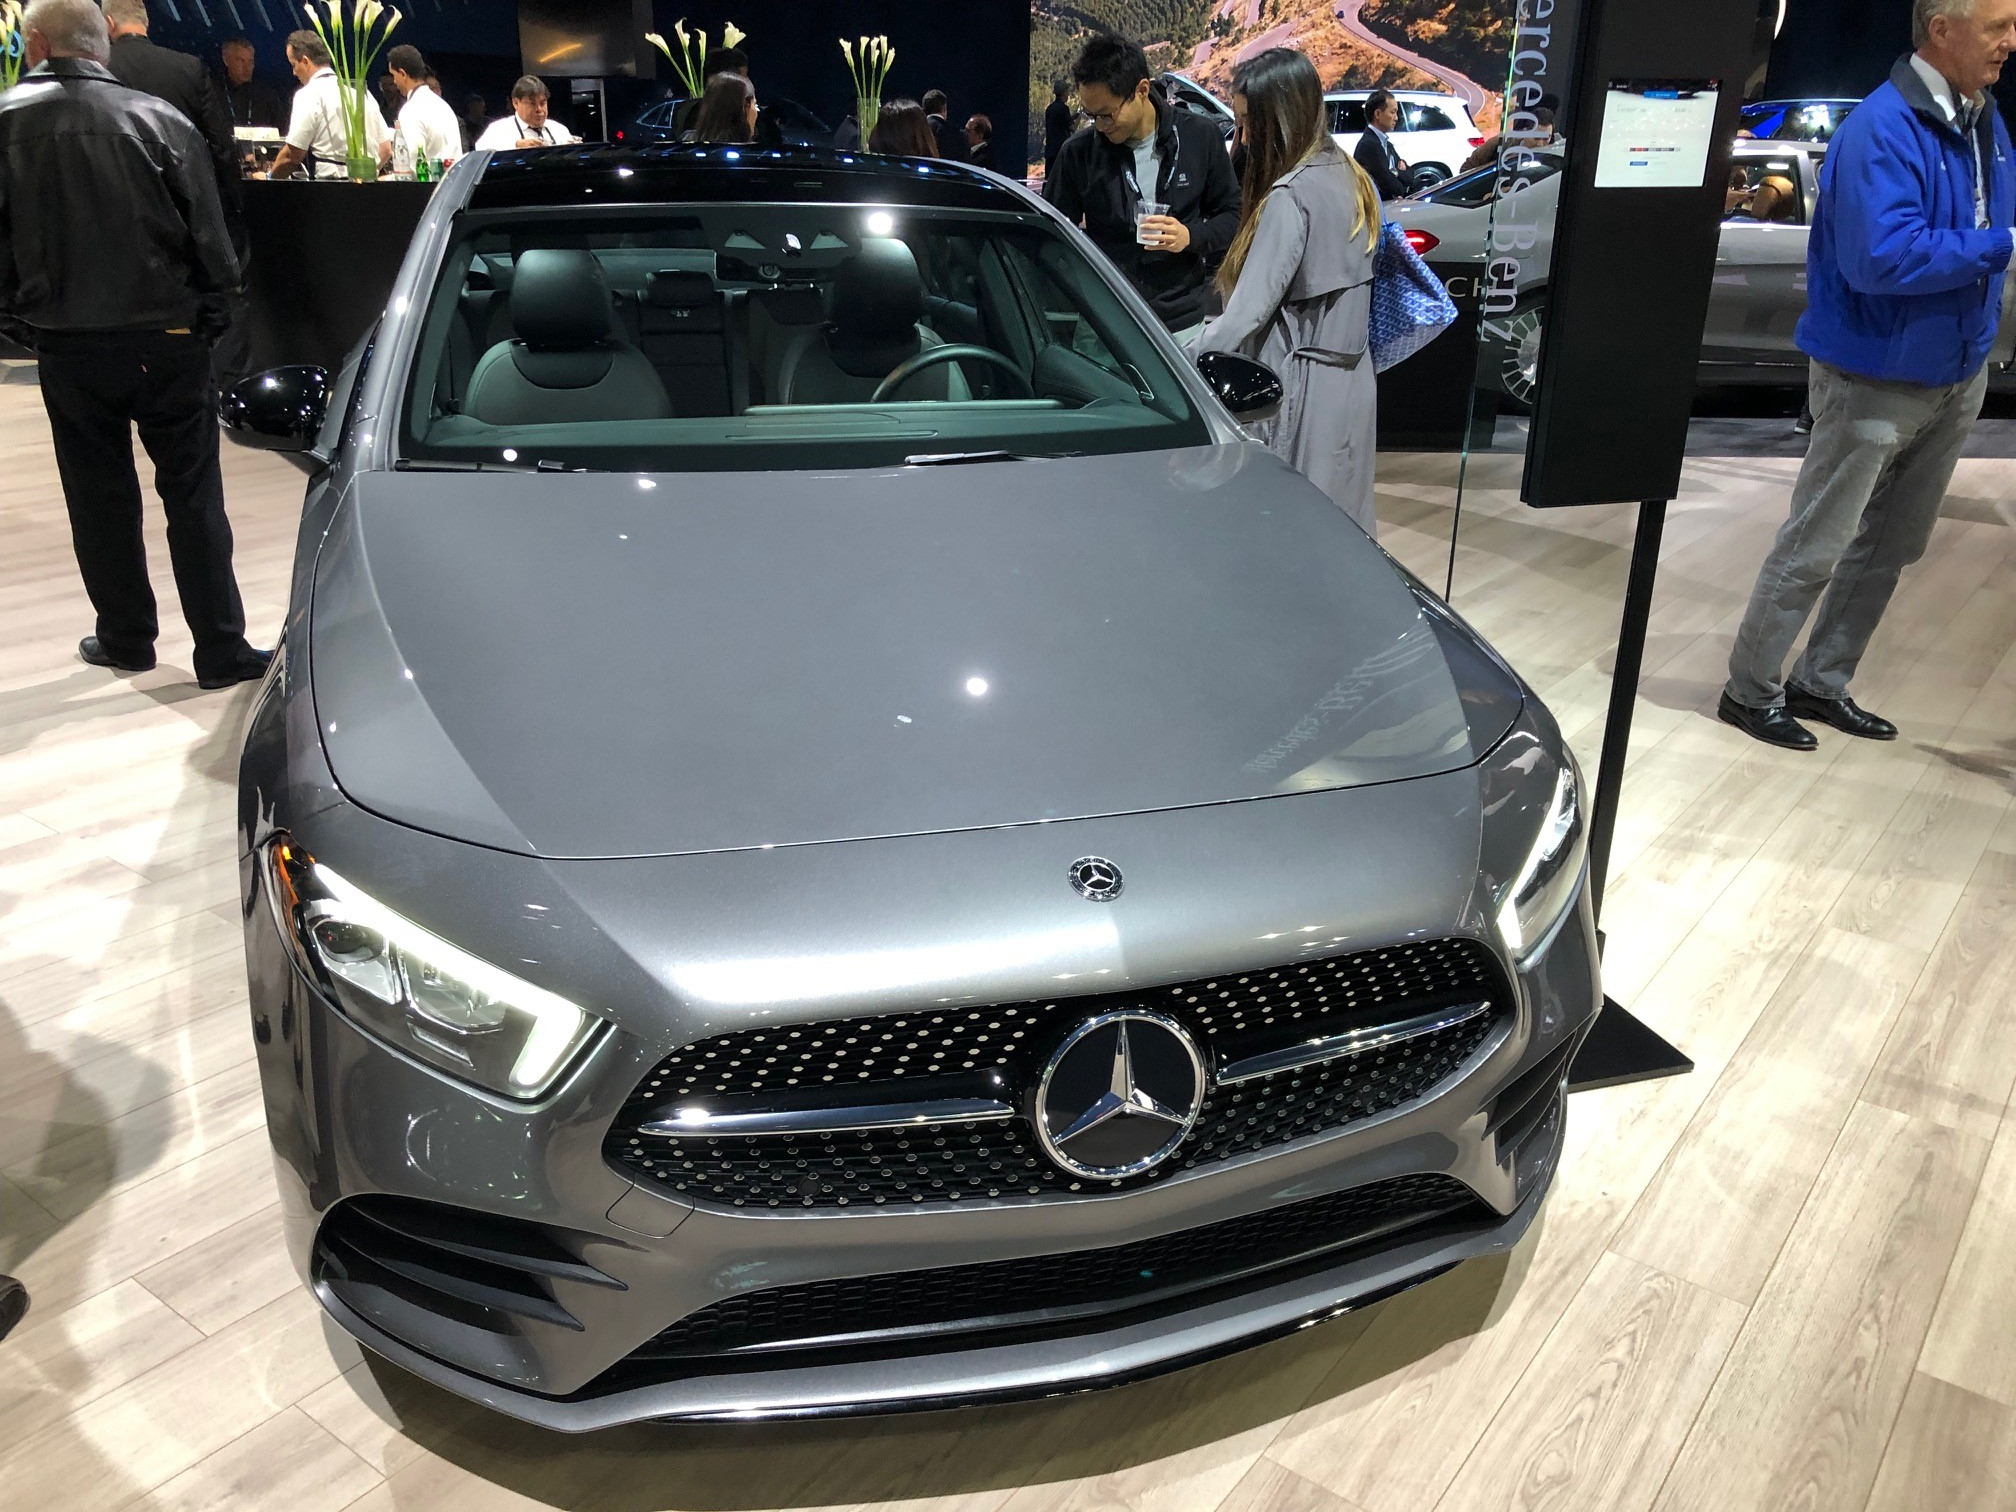 Mercedes-Benz 2020-MY Fleet Preview Coincides with LA Auto Show